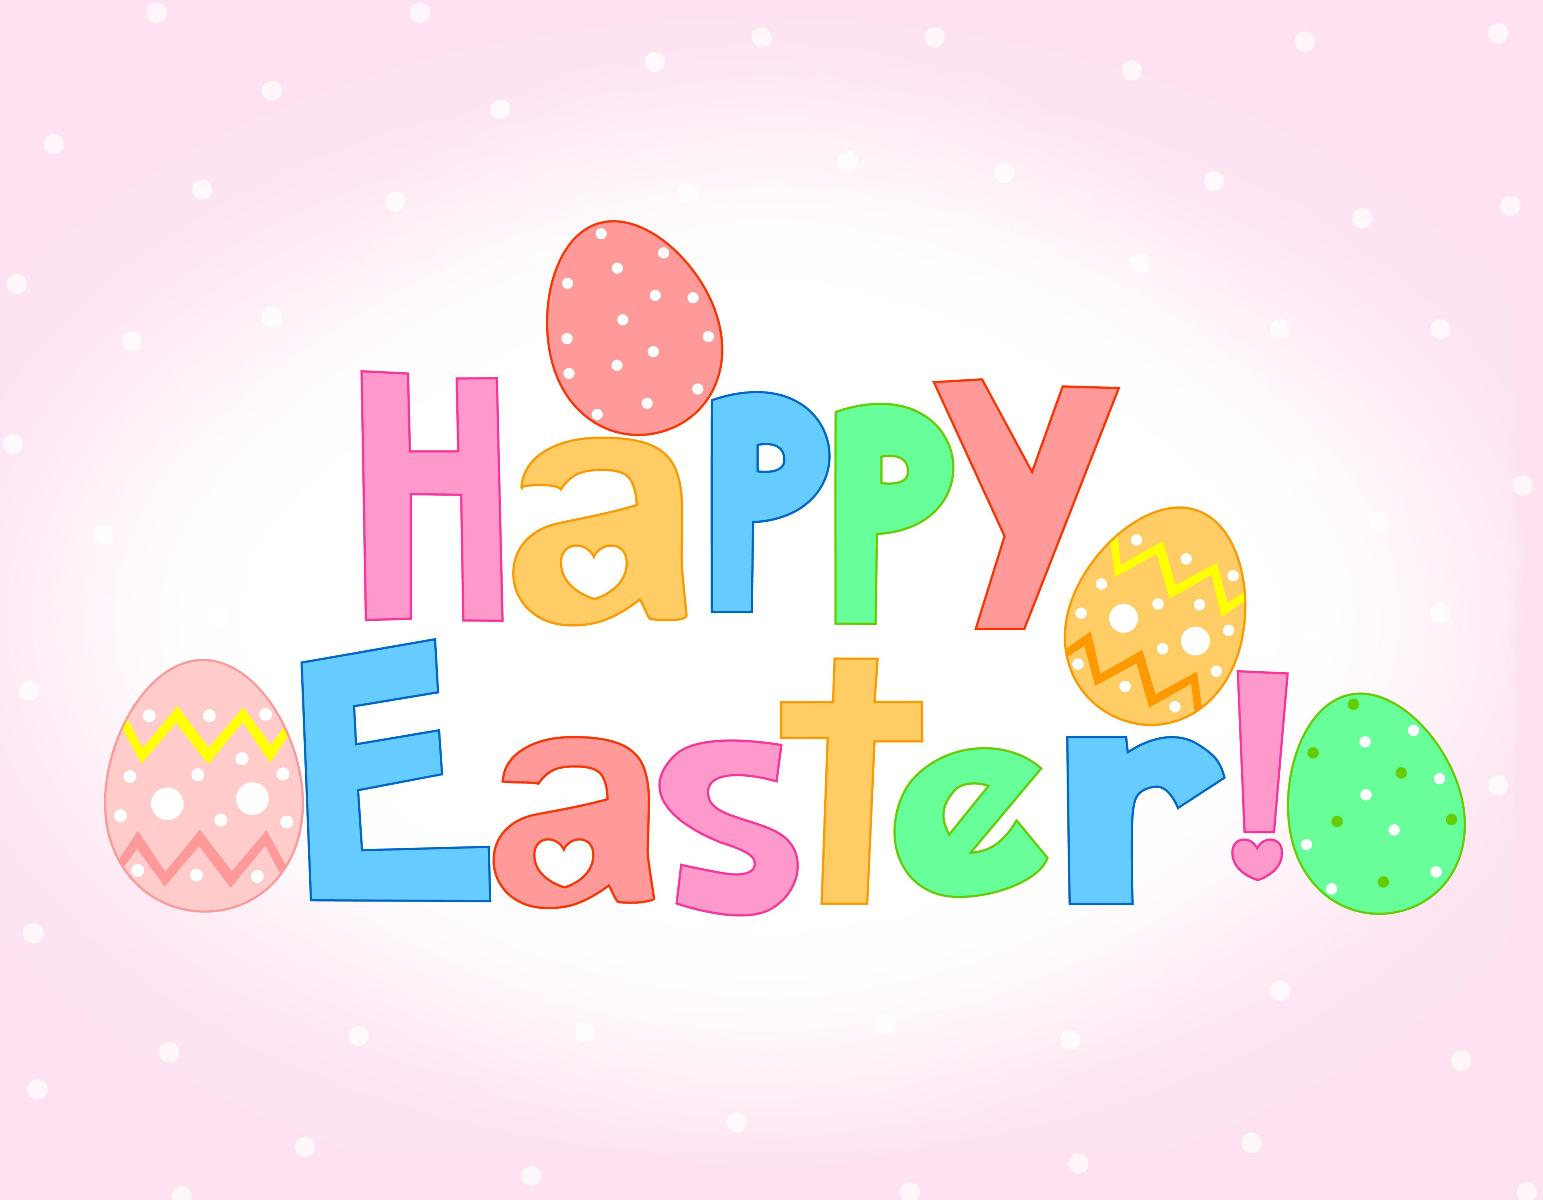 Buy Easter Happy banner pictures picture trends